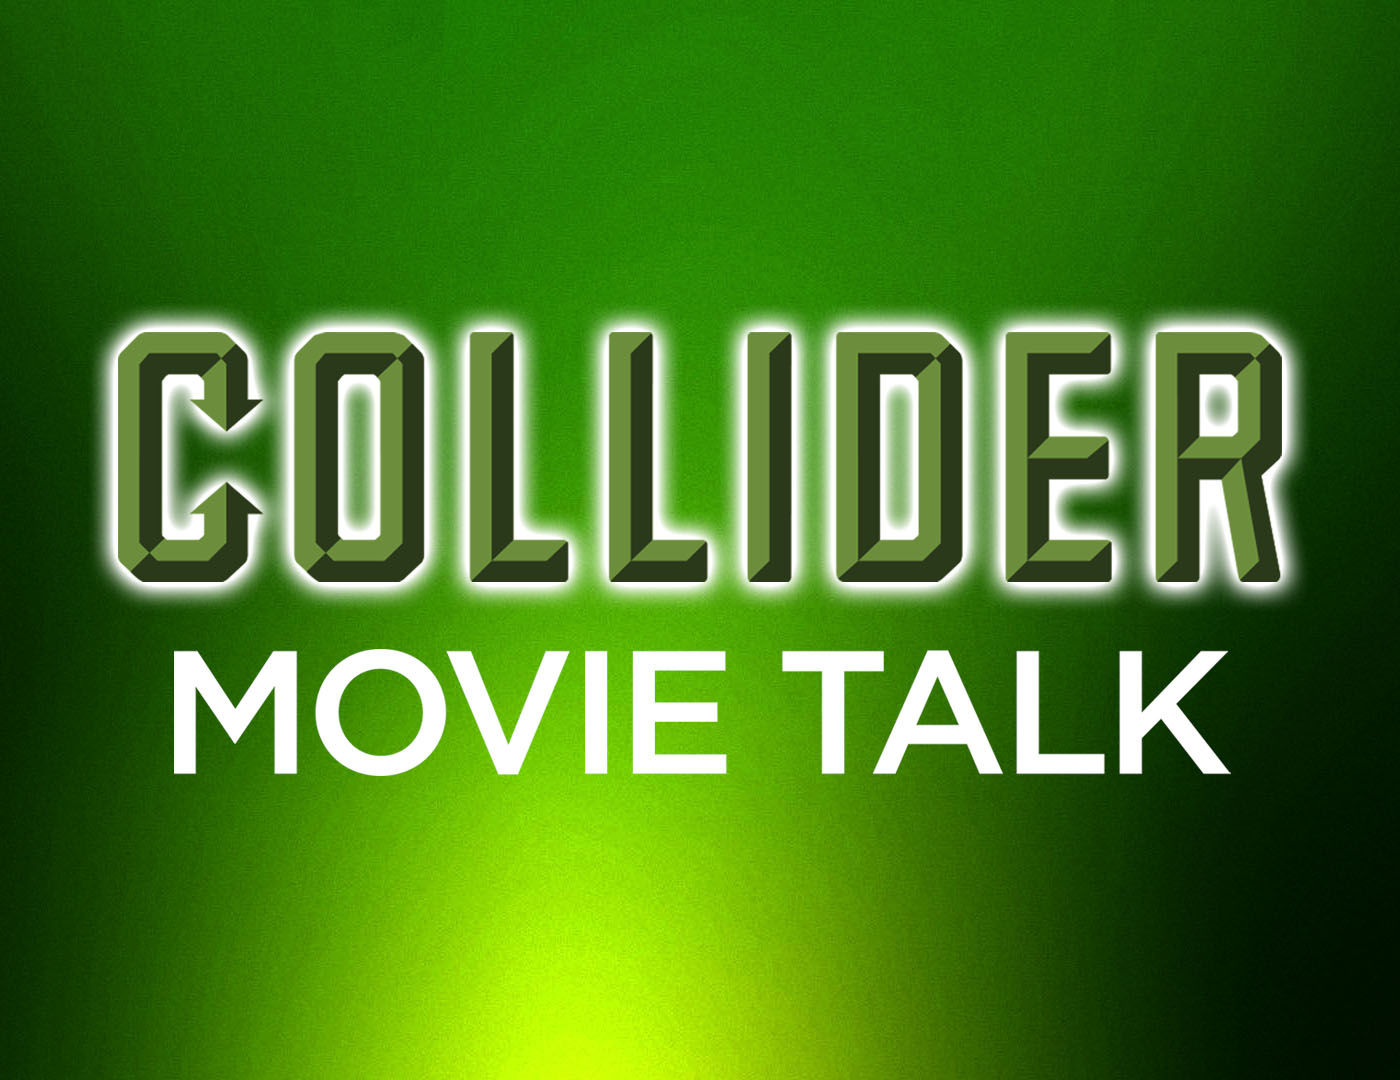 Collider Movie Talk - Nathan Fillion To Cameo In Guardians Of The Galaxy 2?